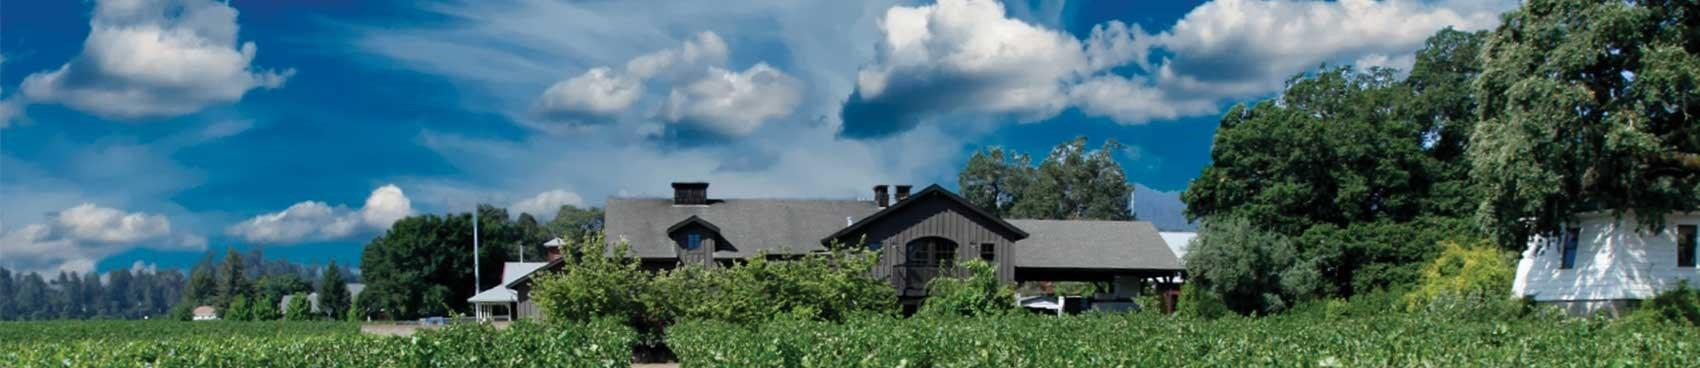 A image of Salvestrin Winery